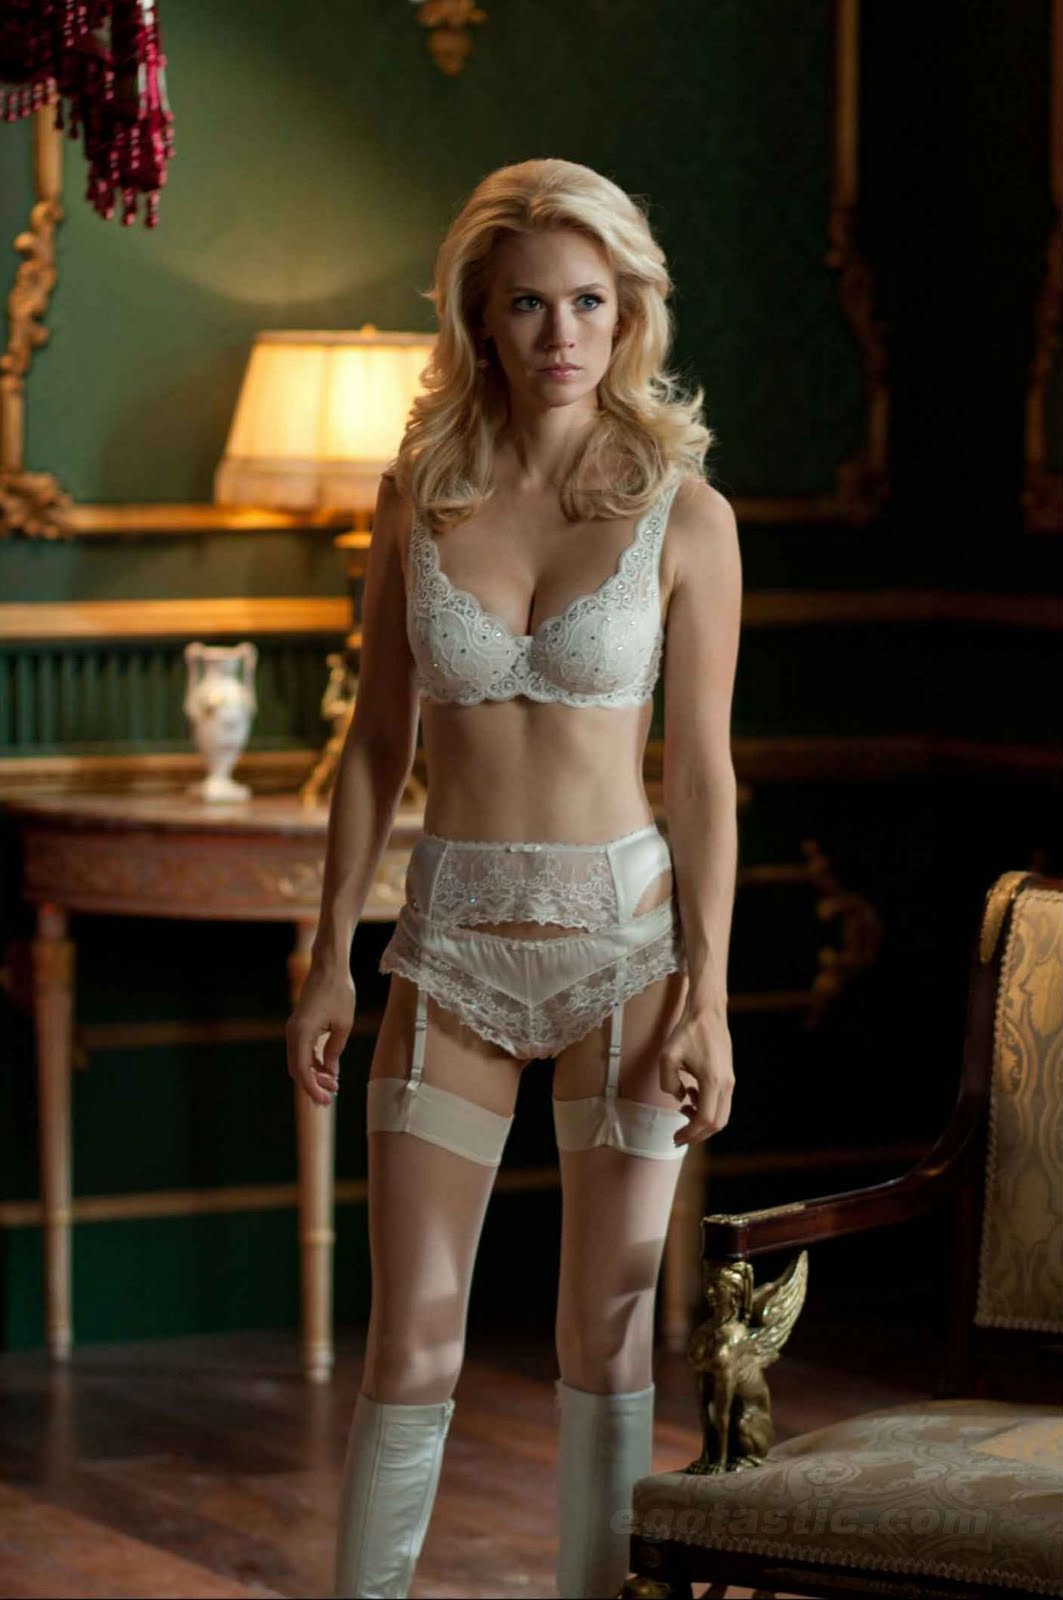 http://1.bp.blogspot.com/-Lotn-ErOJq4/TfERRnCTceI/AAAAAAAADNk/lrck_VqPWwY/s1600/january-jones-x-men2.jpg